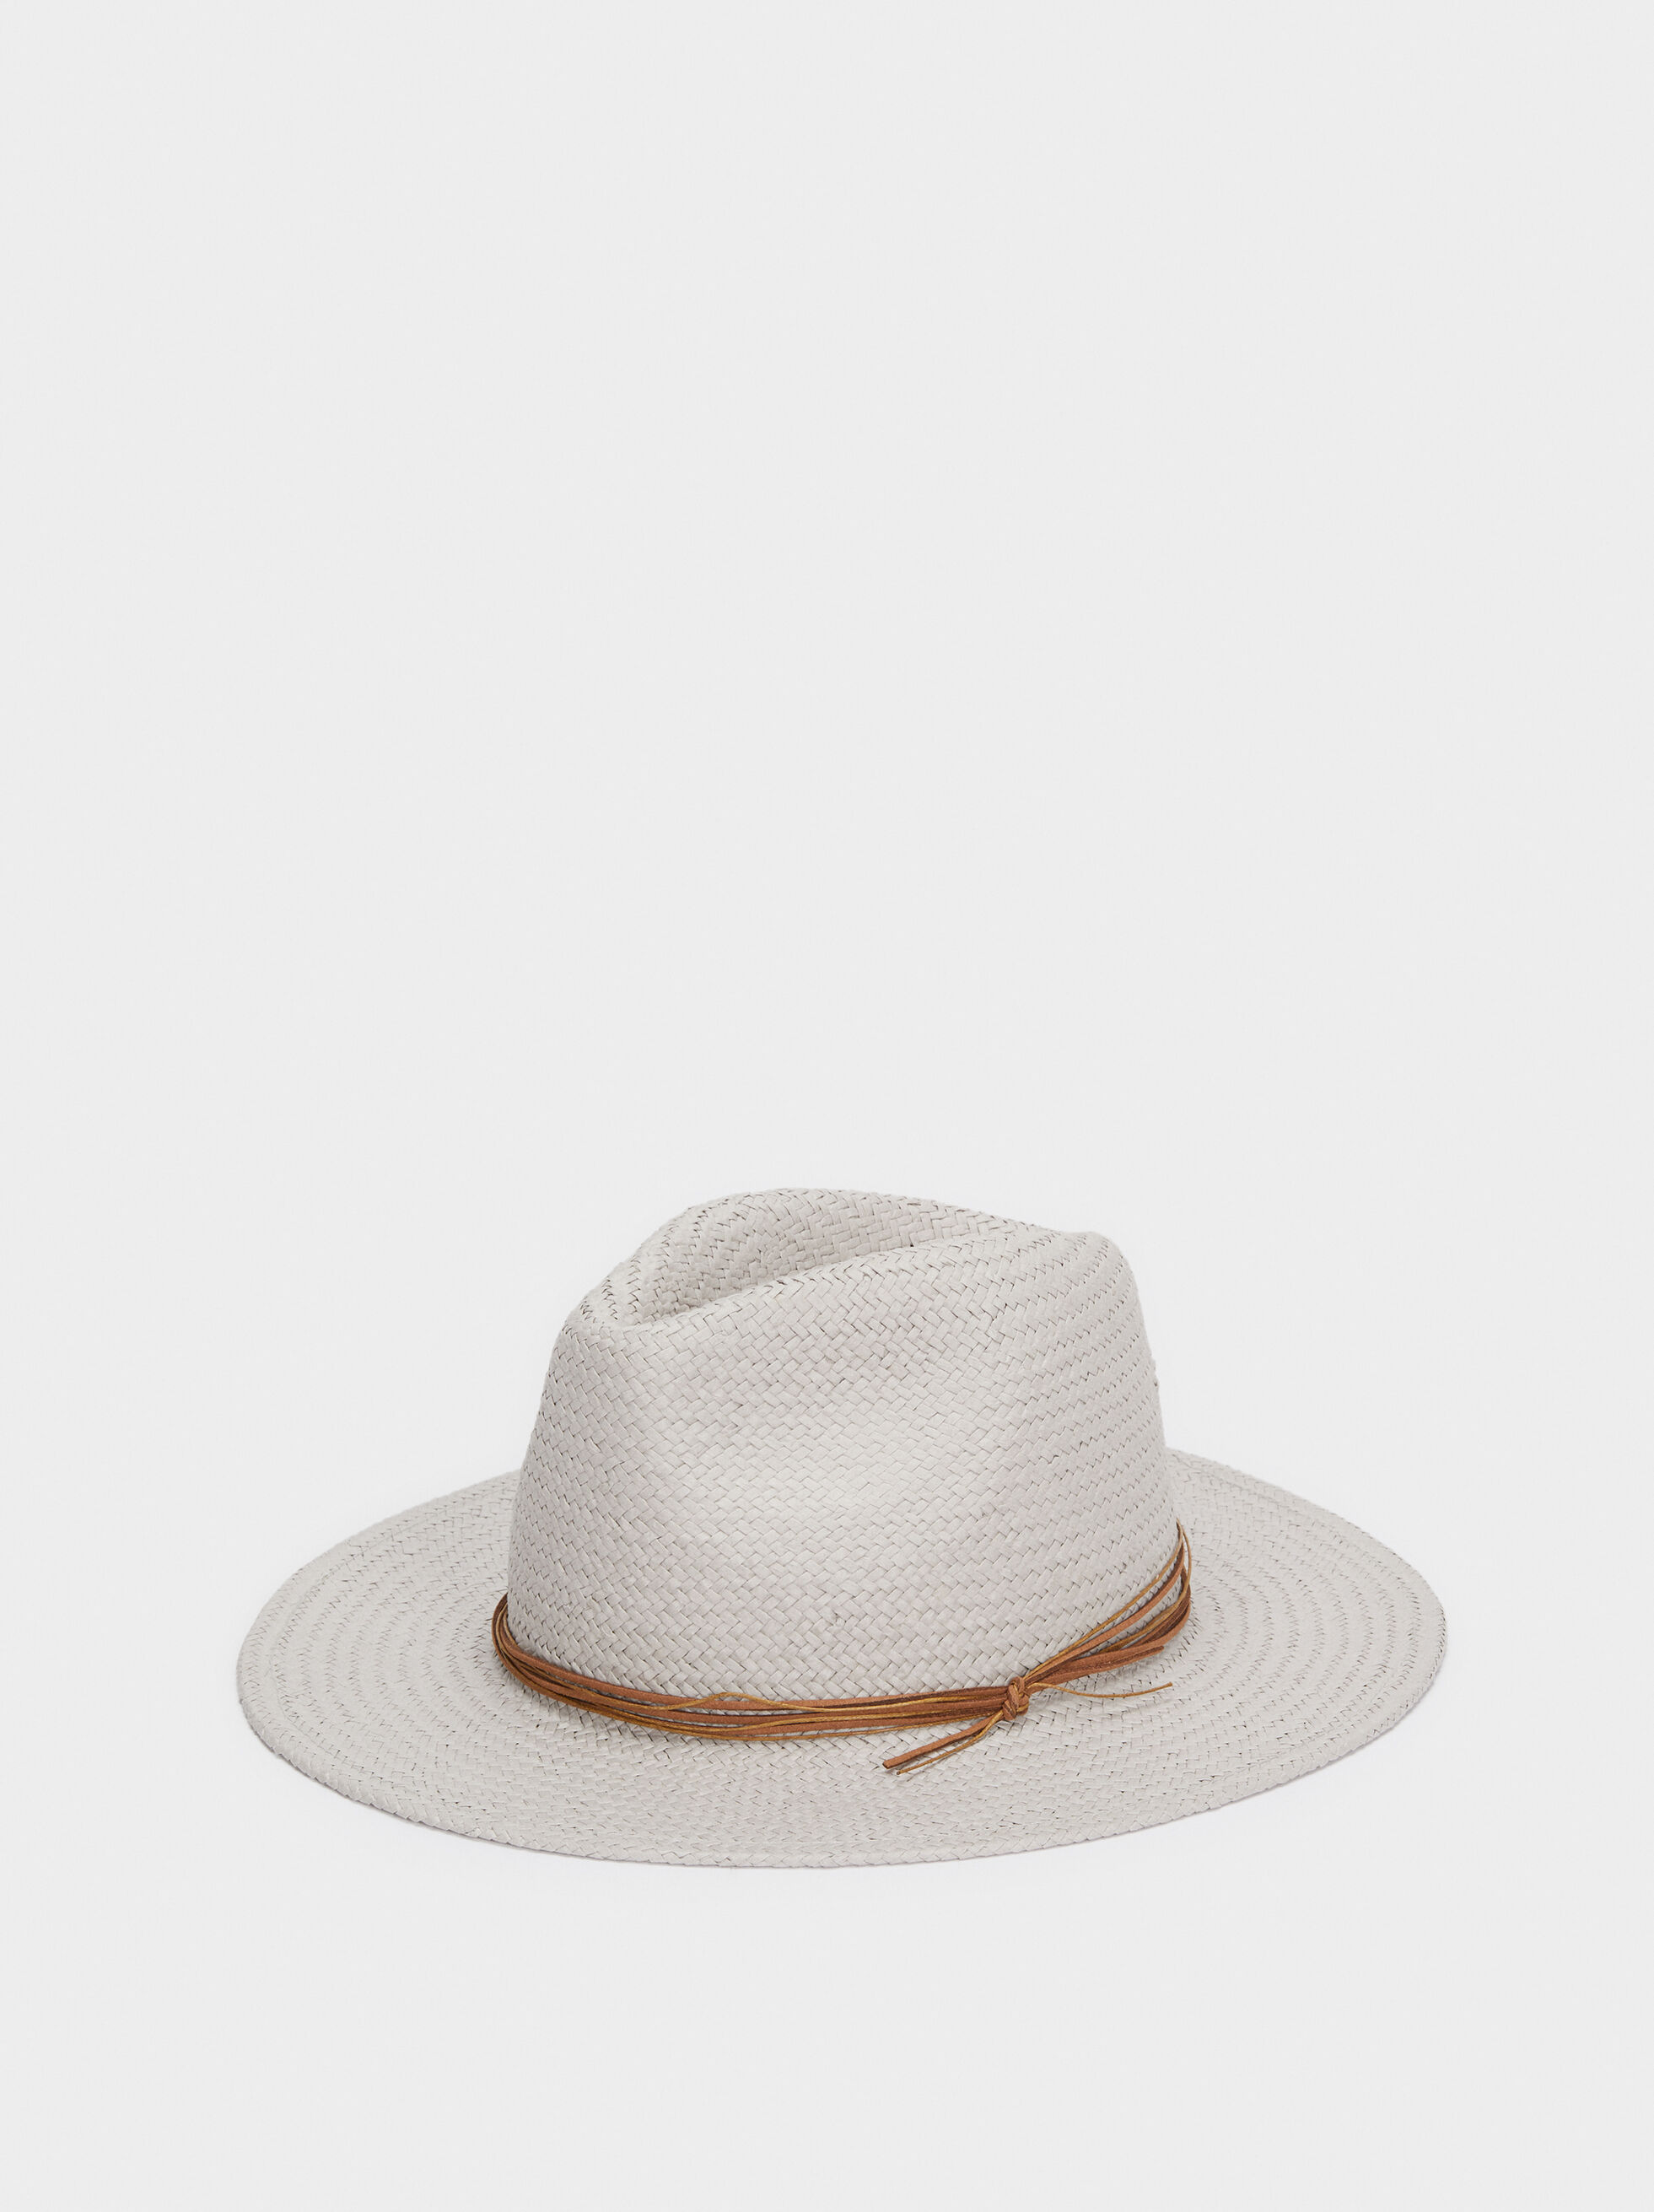 Textured Raffia Hat, , hi-res